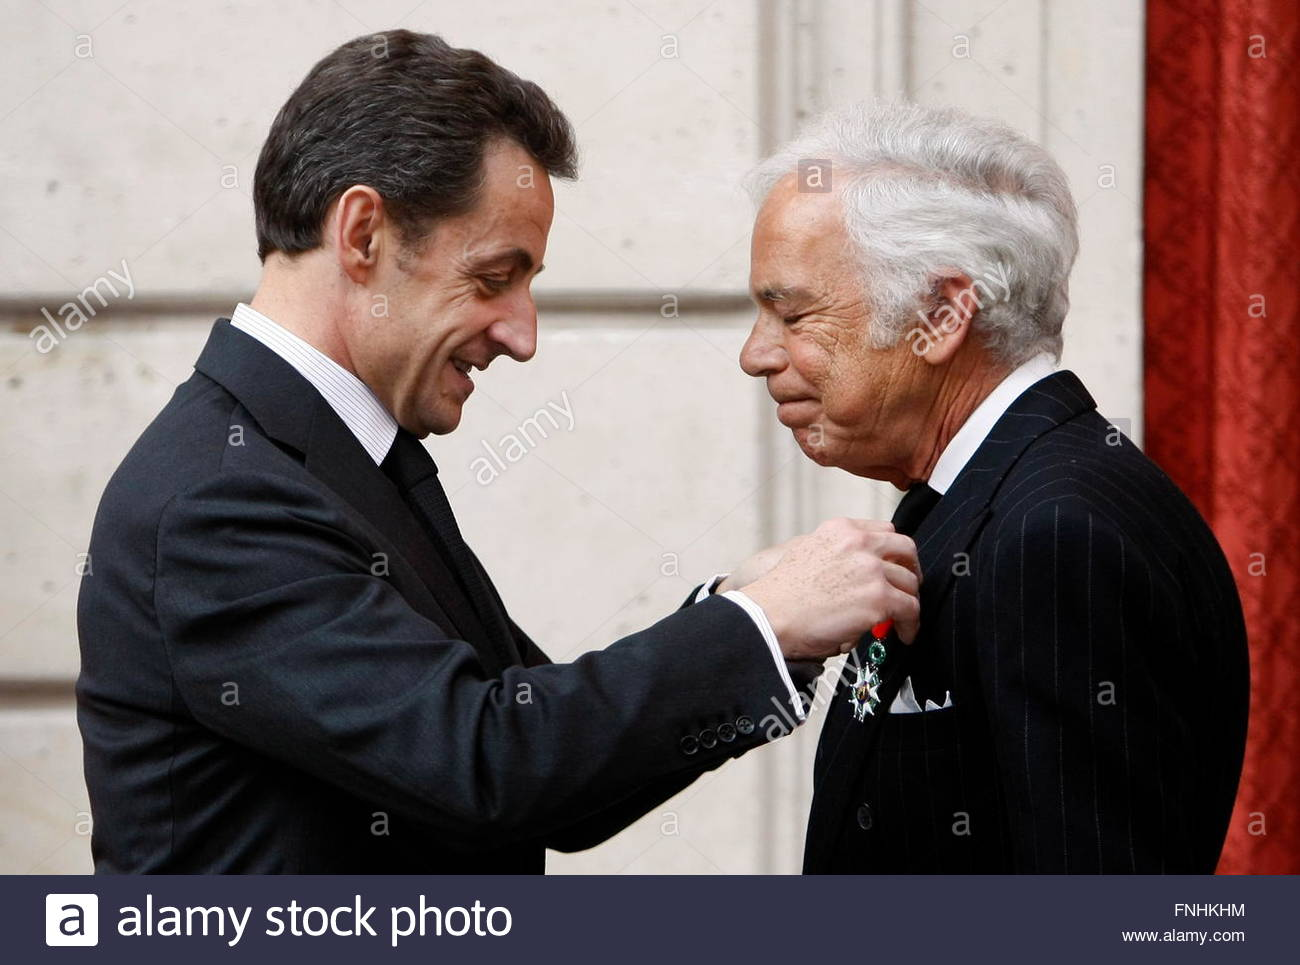 Stock Photo - epa02118689 US fashion designer Ralph Lauren (R) is awarded Chevalier of the Legion of Honor, one of France\u0026#39;s most prestigious distinctions, ...